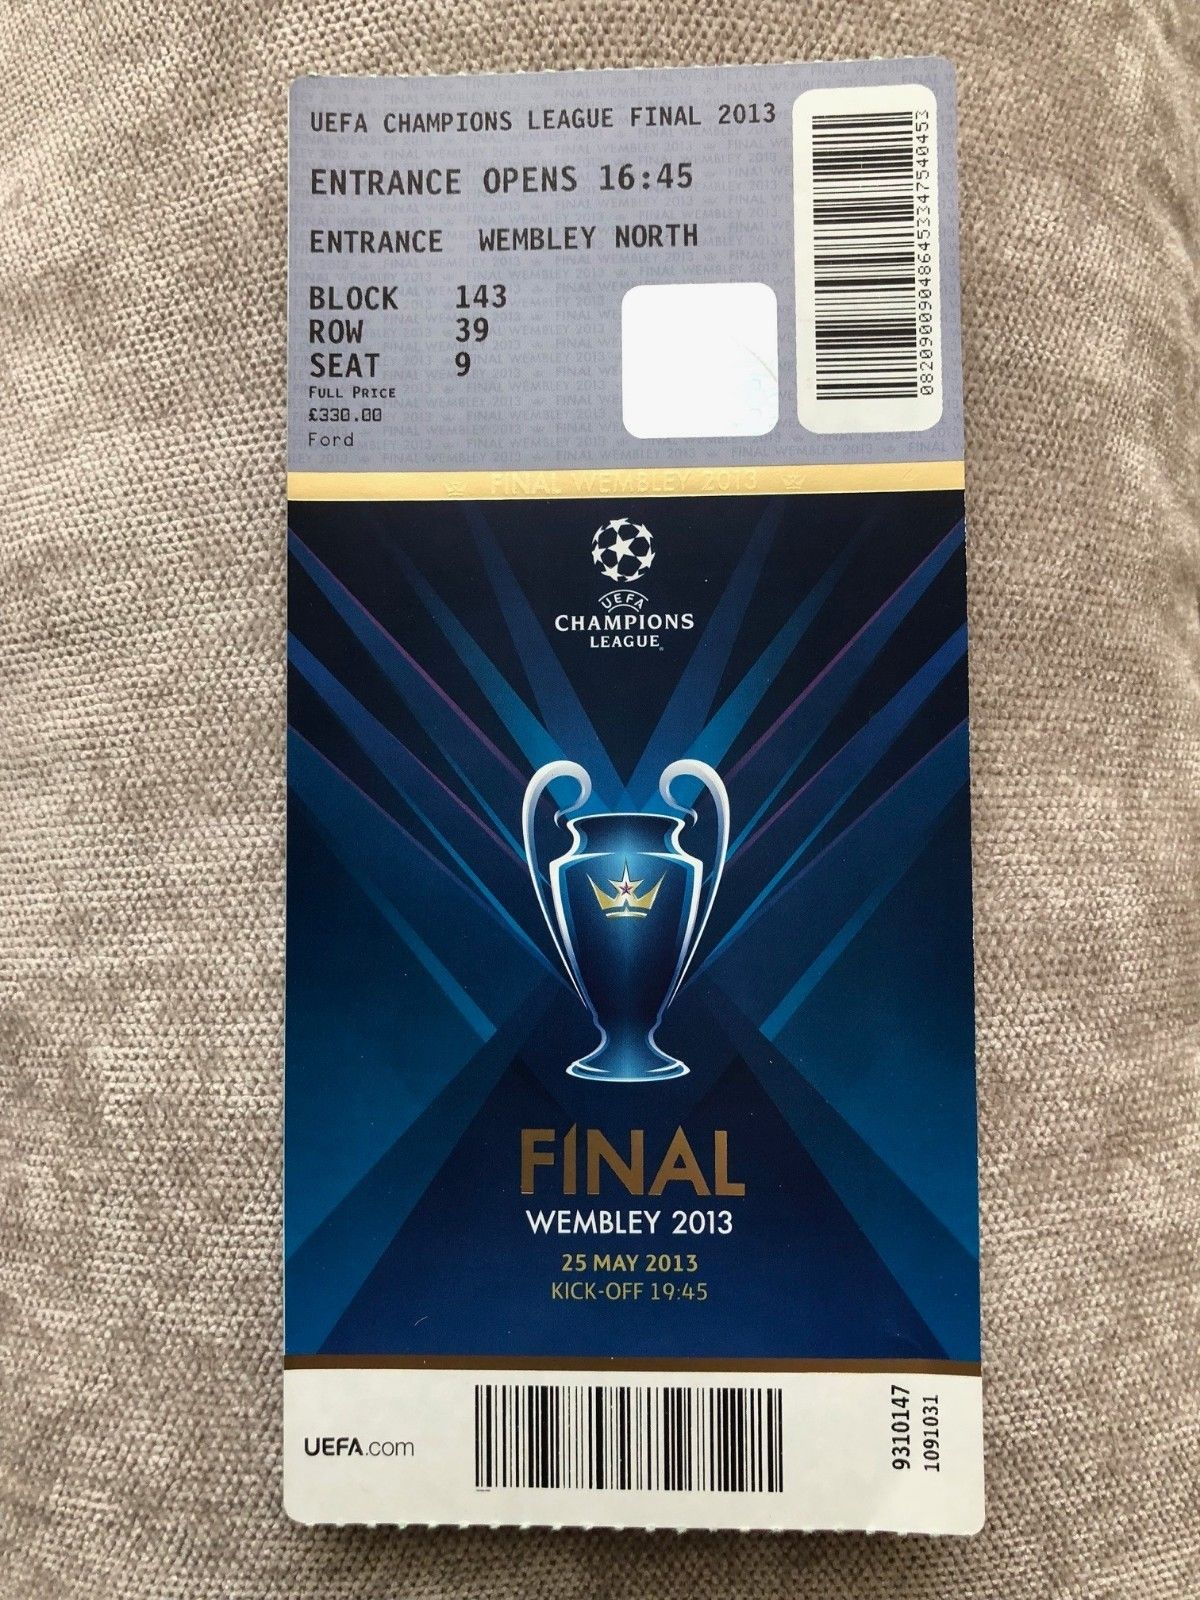 7804fa348b9 2013 UEFA Champions League Final Wembley Bayern Munich Borussia Dortmund  Ticket (eBay Link)